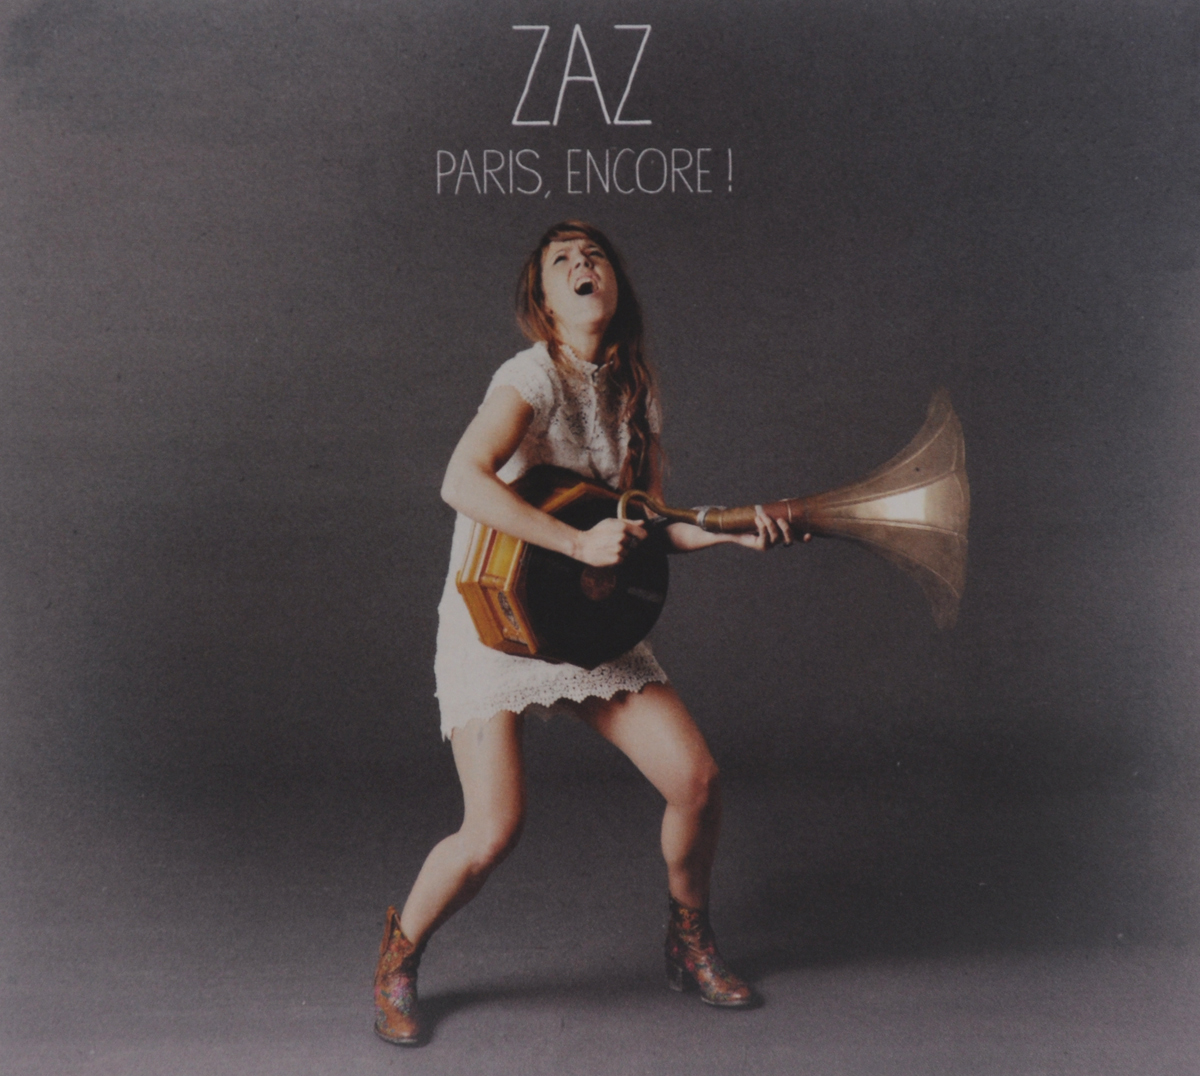 Zaz Zaz. Paris, Encore! (CD + DVD) puchta h gerngross g devitt m get on stage cd dvd